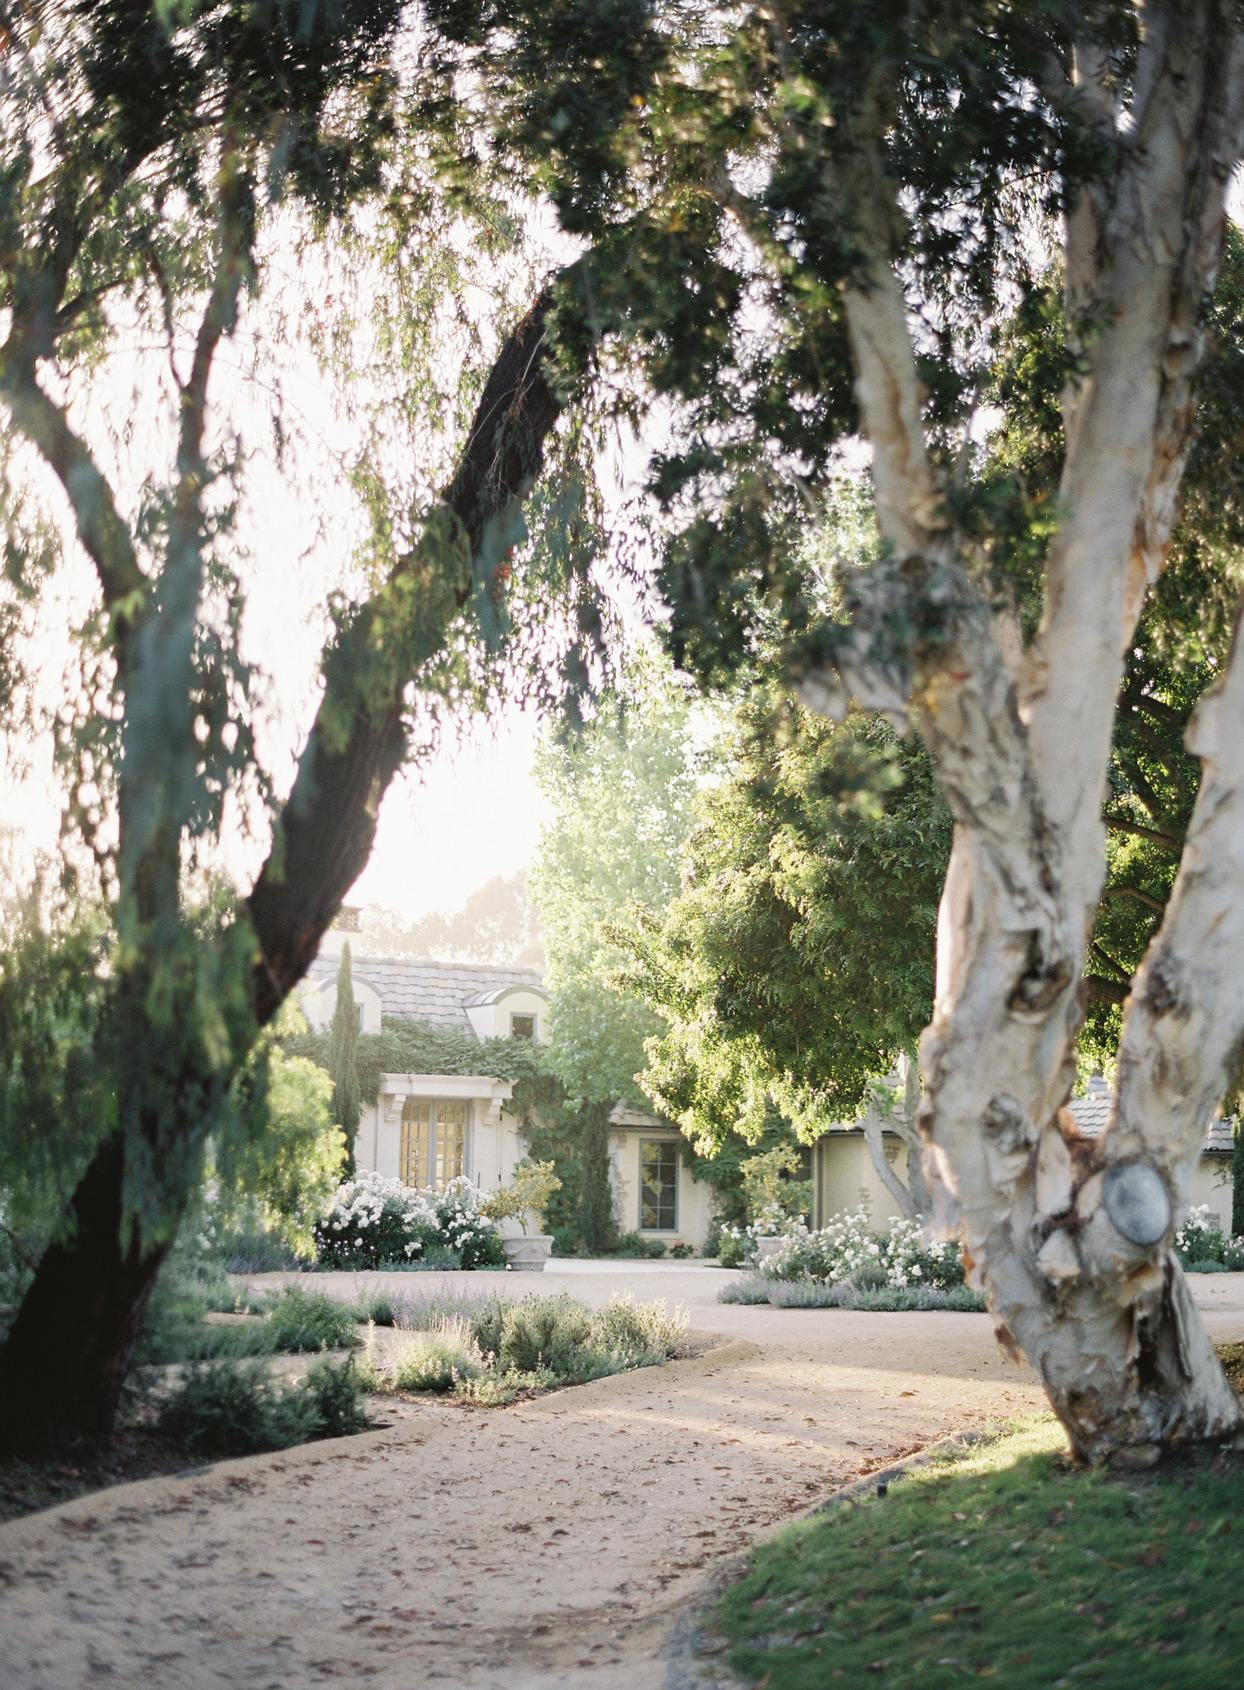 Wedding venue tucked in trees and greenery